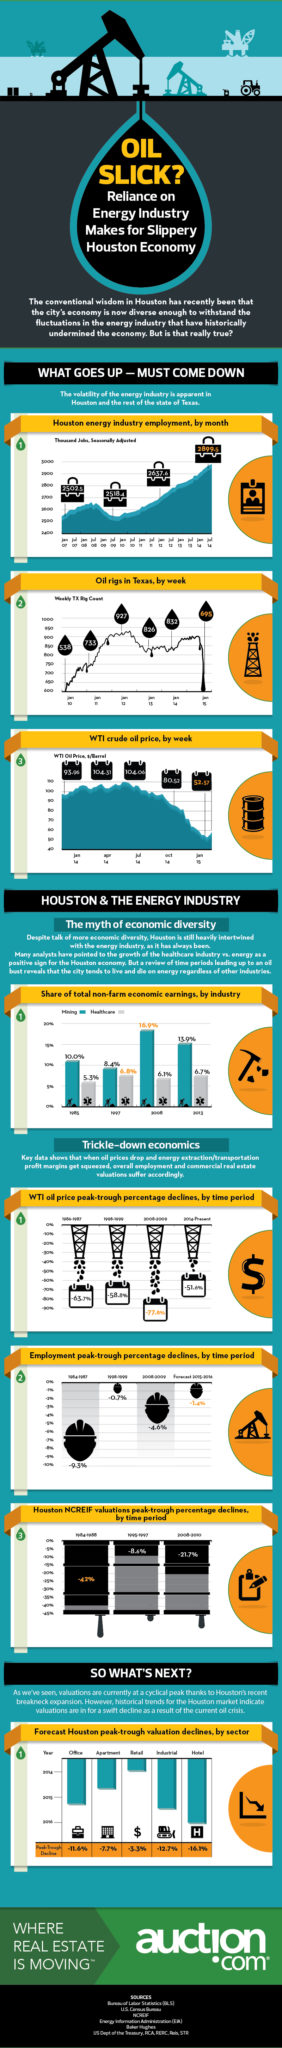 Auction-Houston-economy-19march-2015